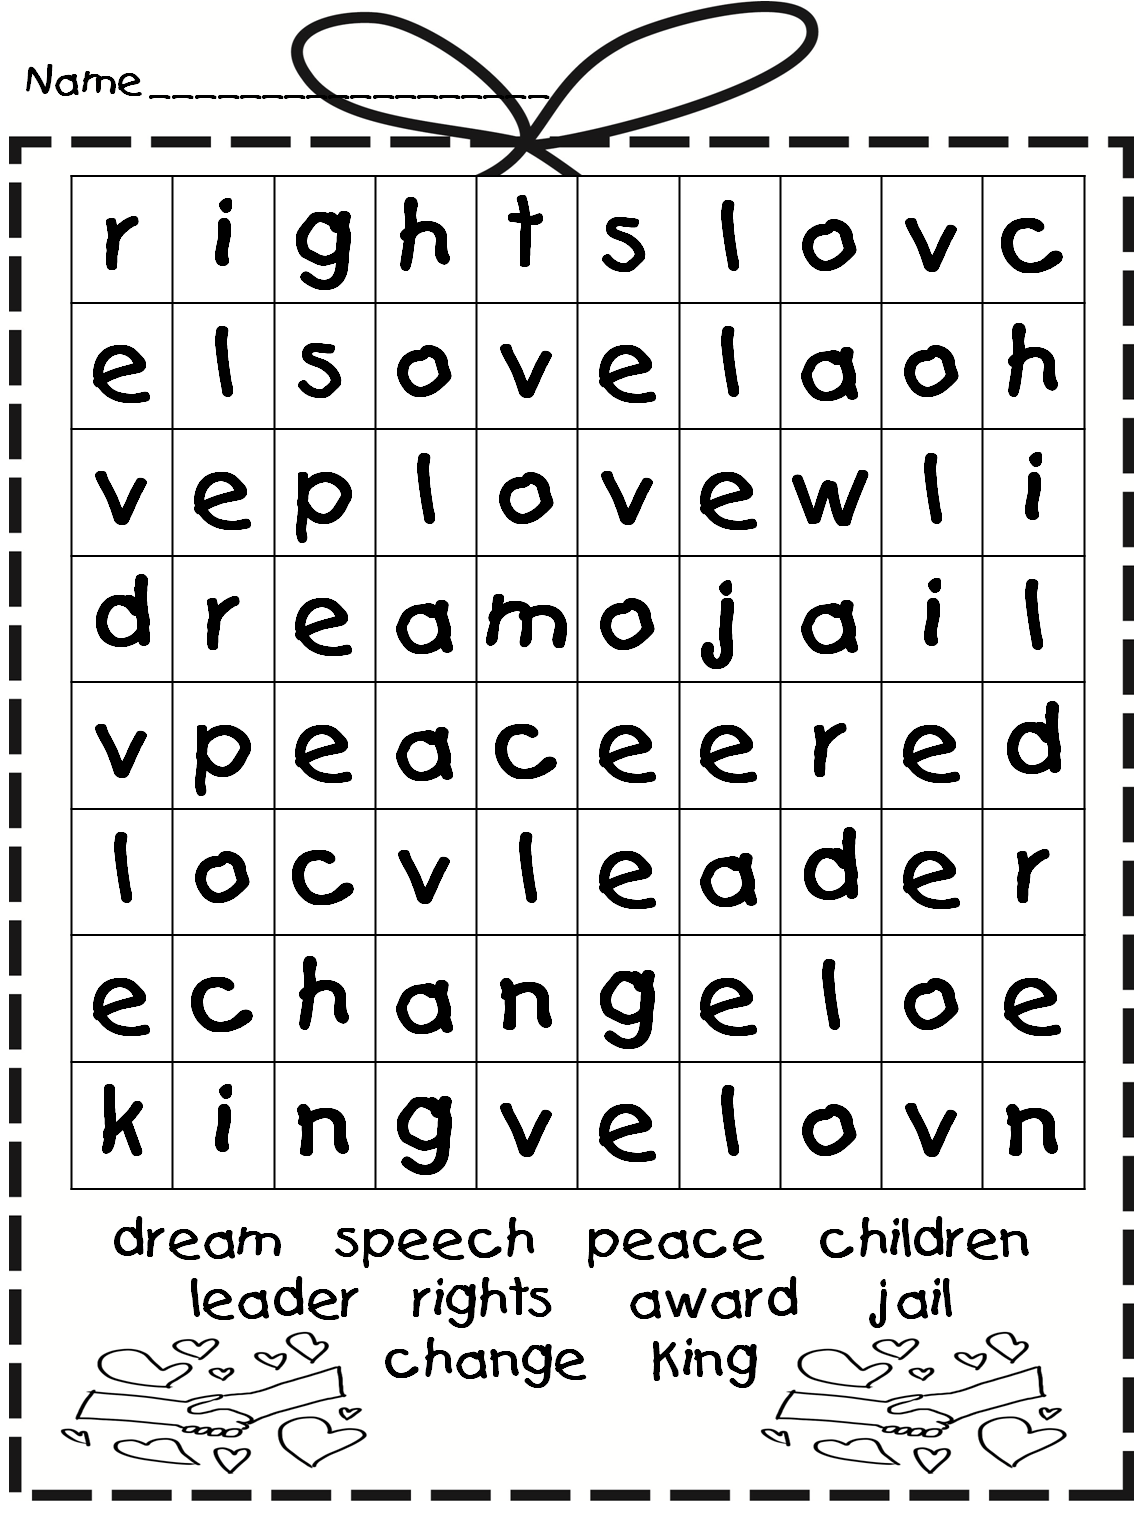 It is an image of Crafty Printable Word Searches